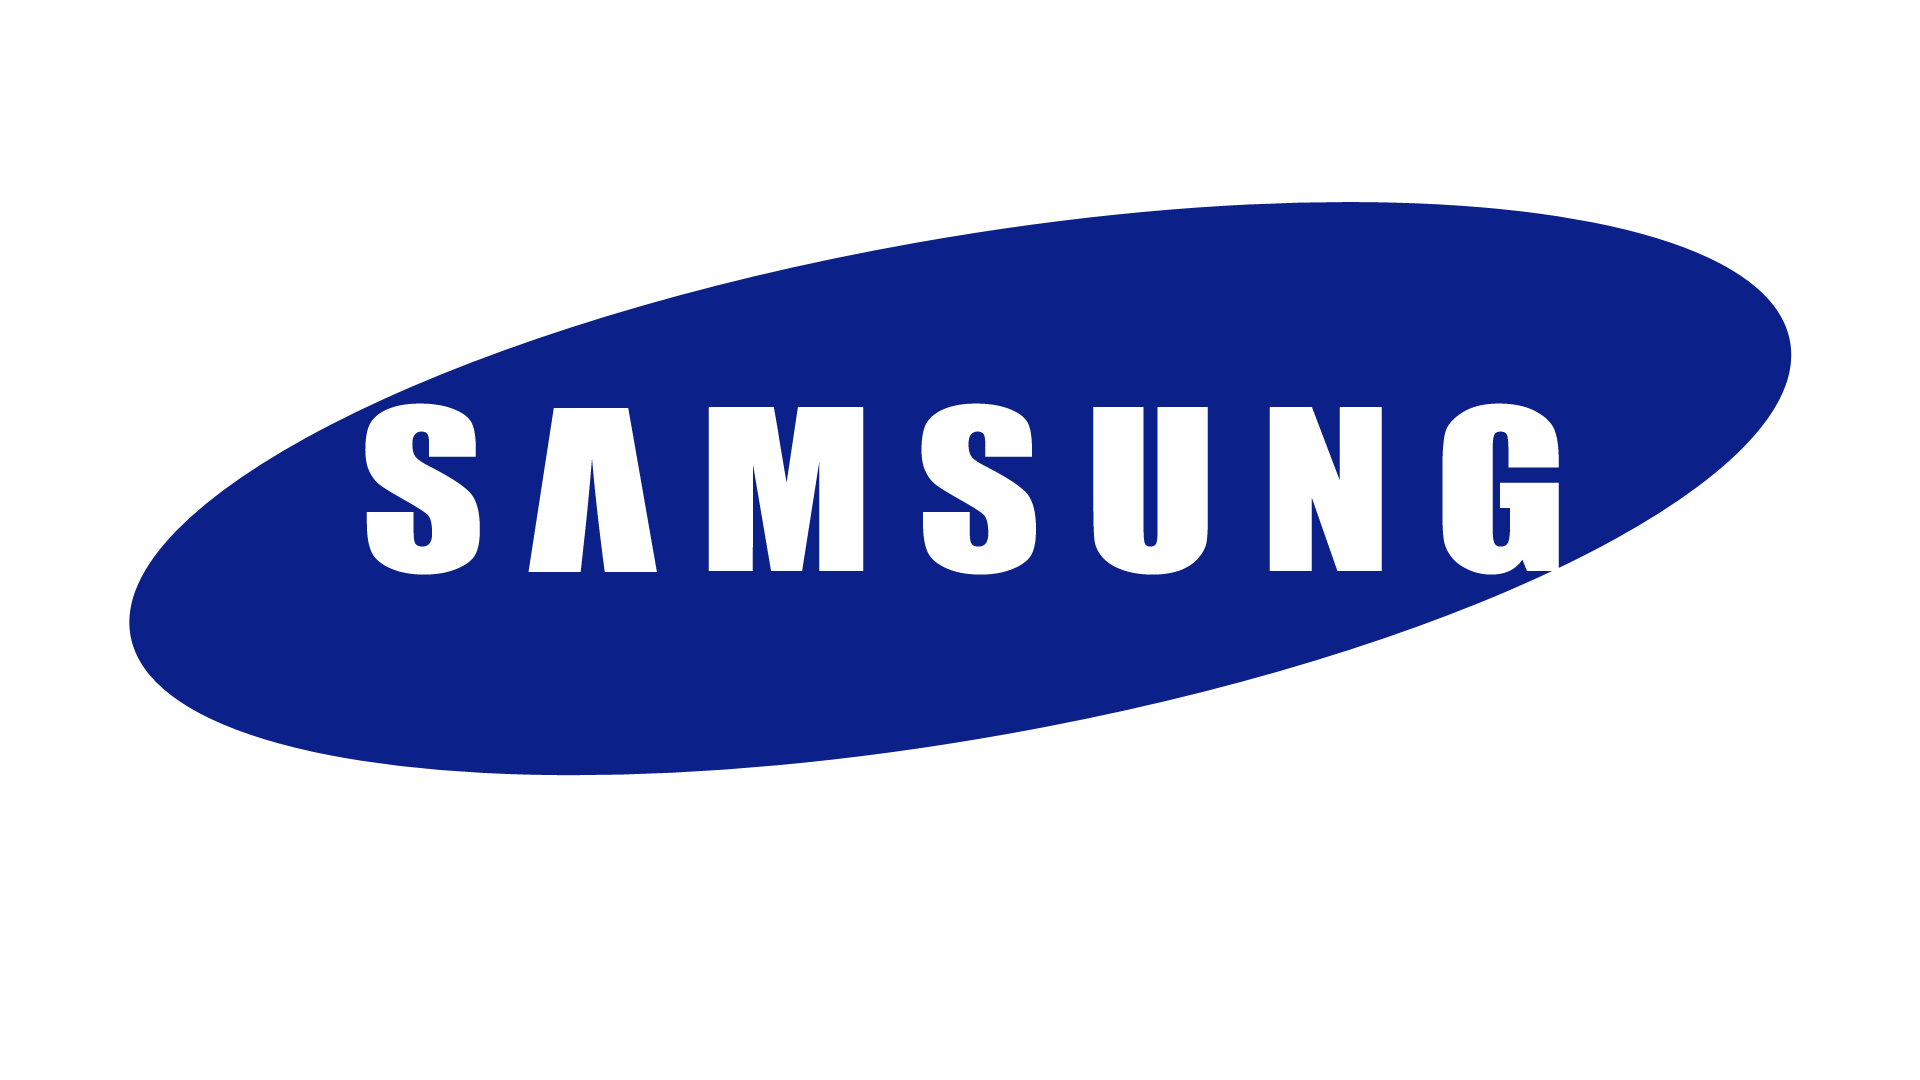 Download Free Original Samsung Logo For Your New Logo Design Template Or Your Web Sites Magazines Samsung Logo Logo Design Template Samsung